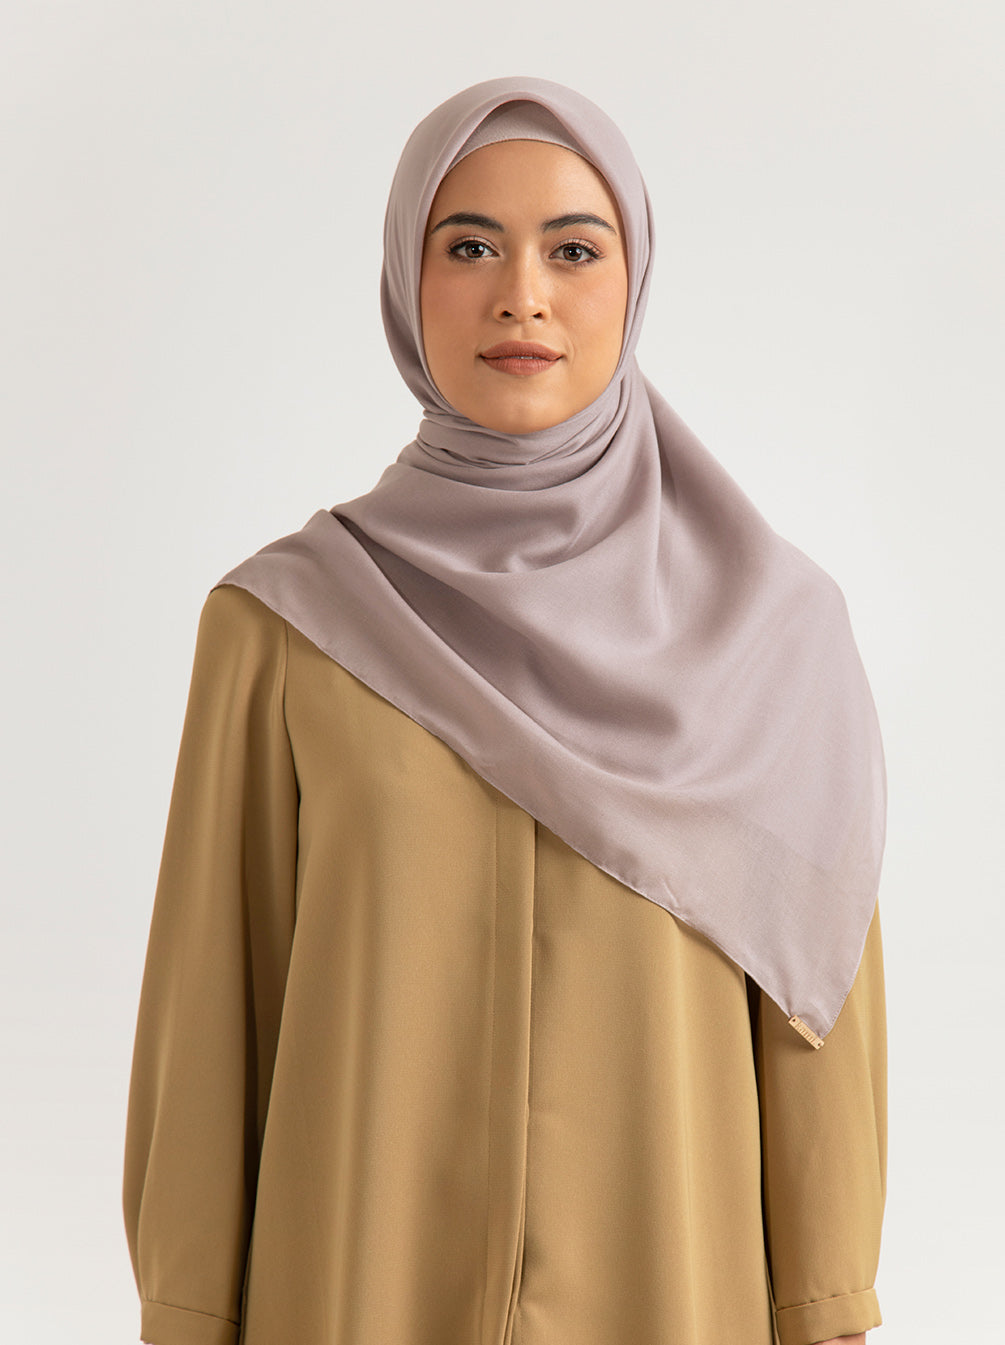 AIRY VOAL SCARF PLAIN FOVER